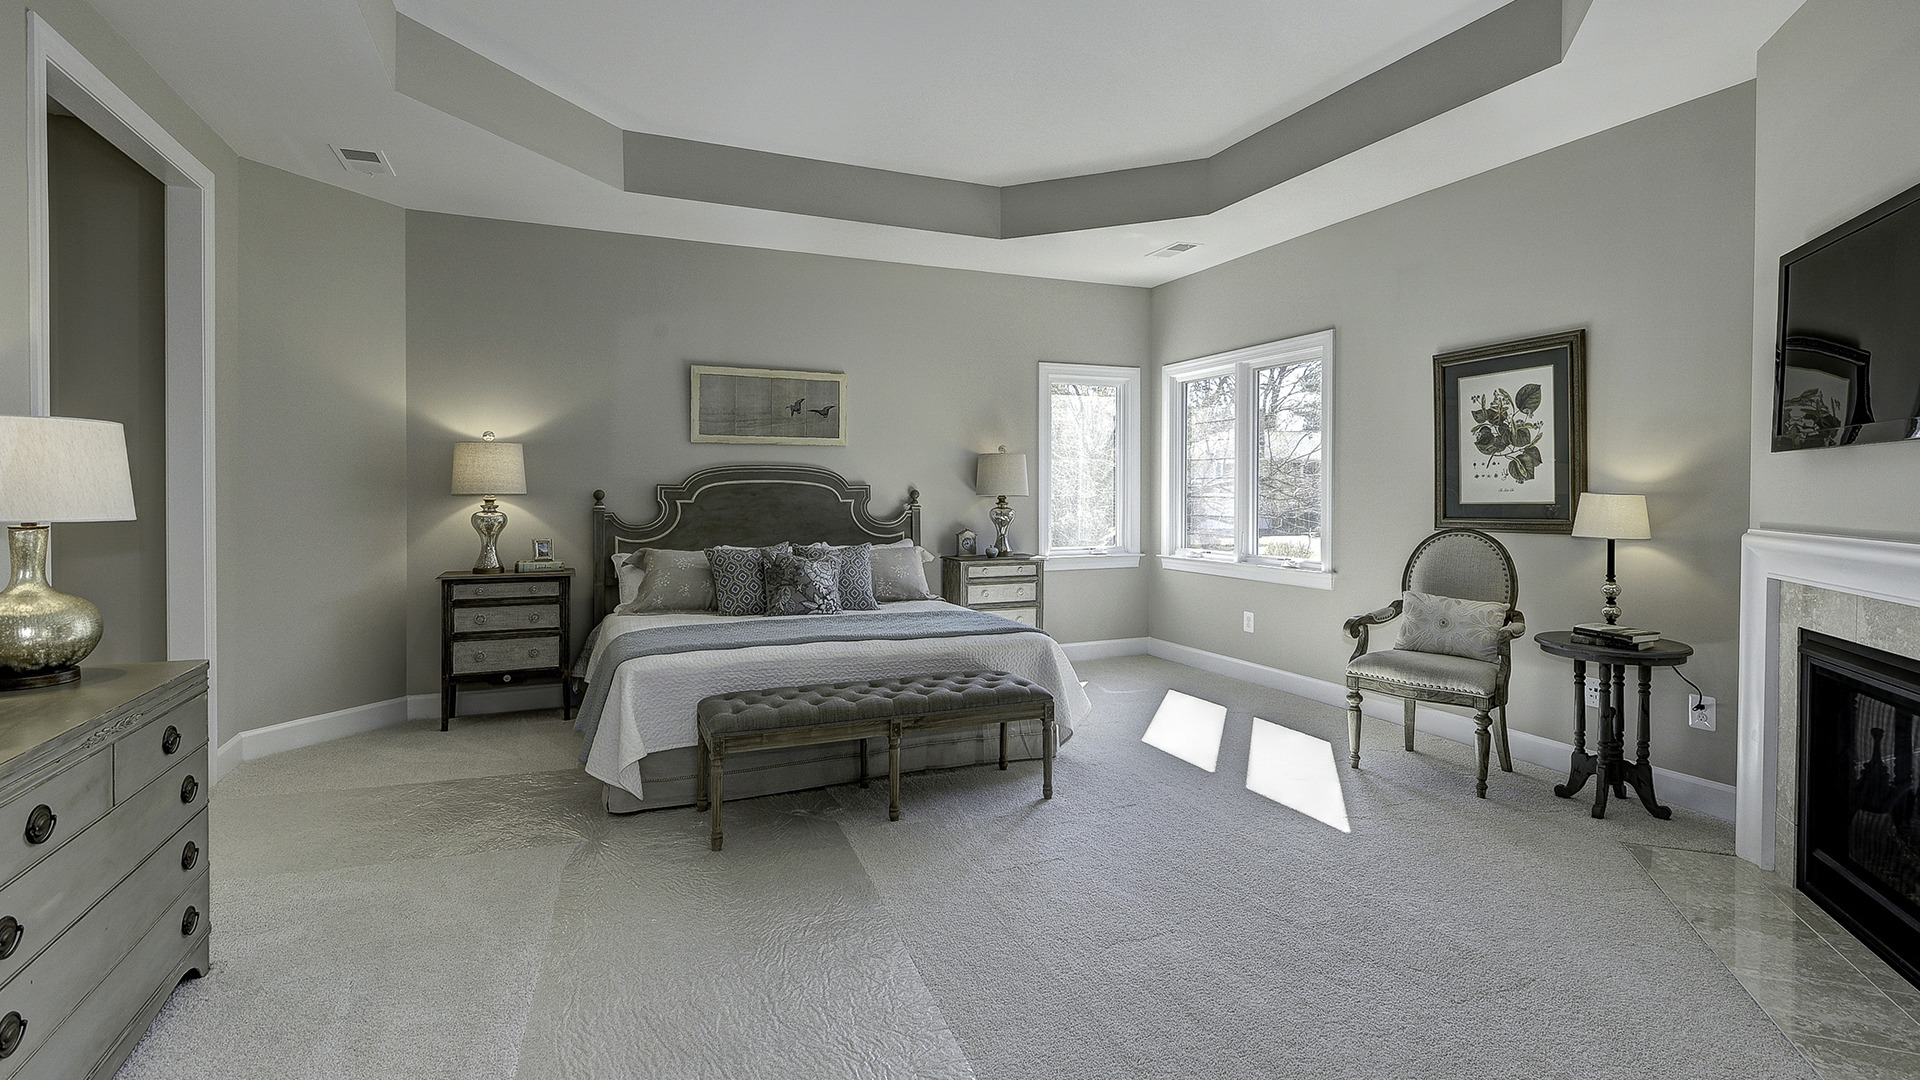 The Owner's Bedroom in Carper Street, a Gulick | One custom home.